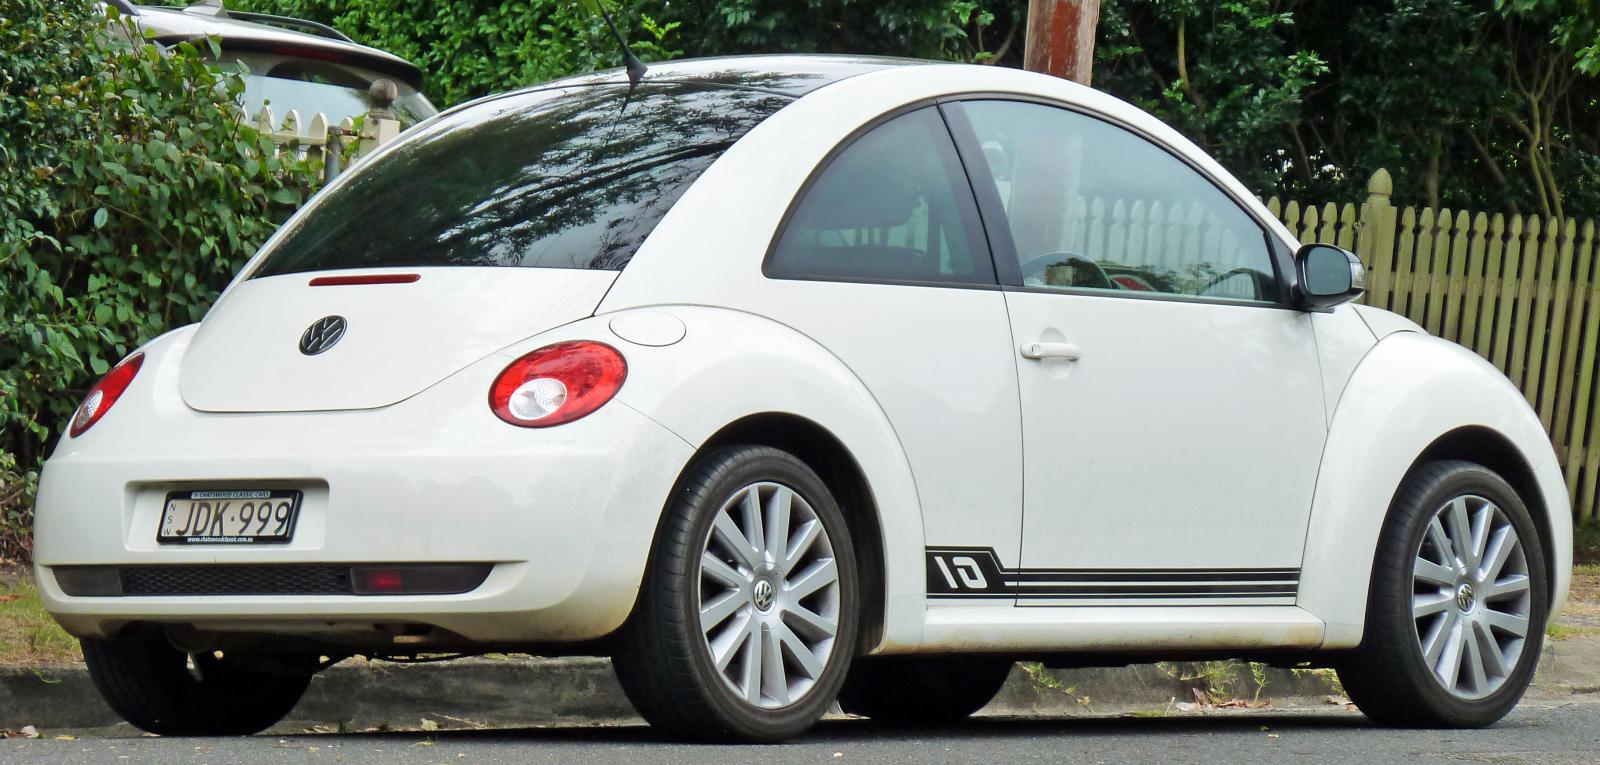 2008 volkswagen new beetle information and photos zombiedrive. Black Bedroom Furniture Sets. Home Design Ideas